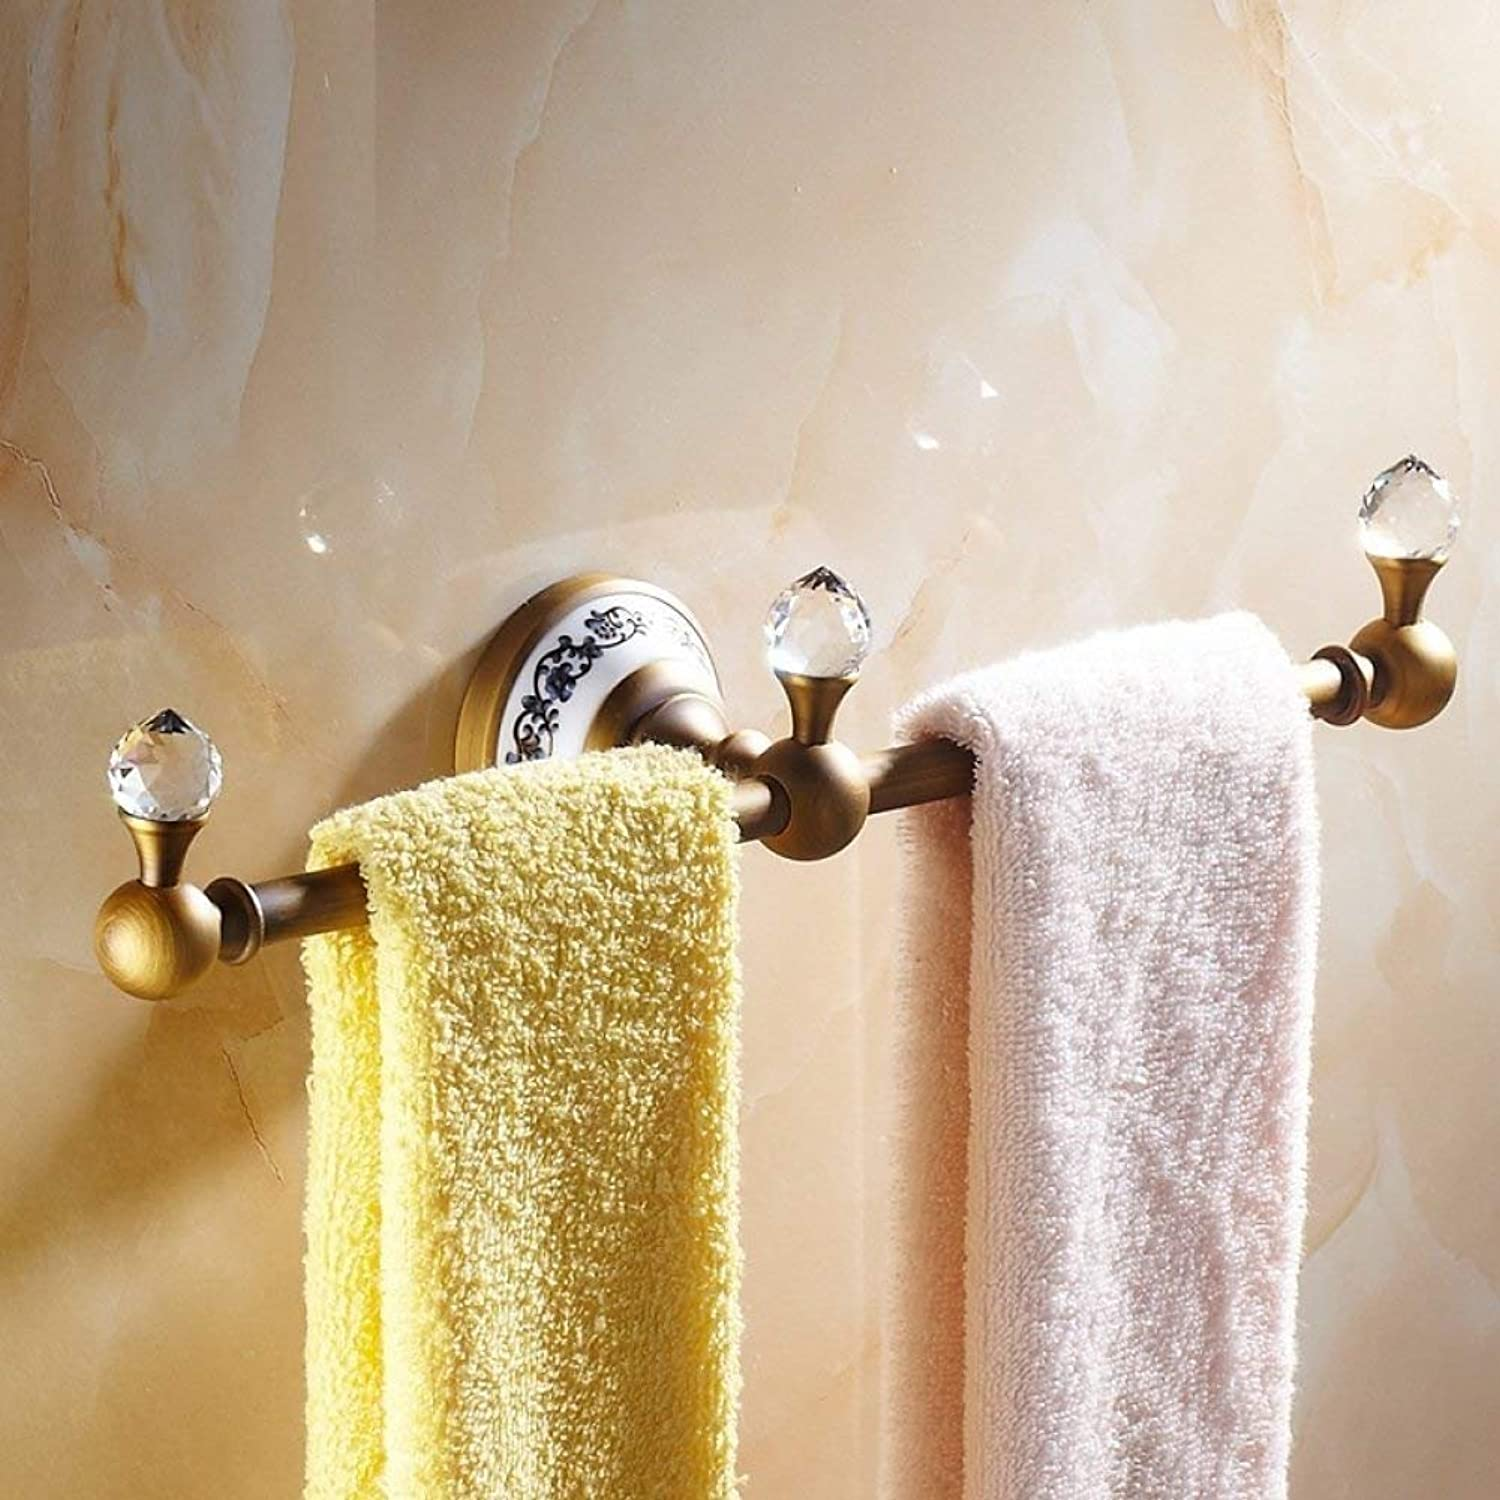 A Dry-Towels Dry-Towels and Bathroom Wall Accessories Copper Brushed European Copper of Baths,gold